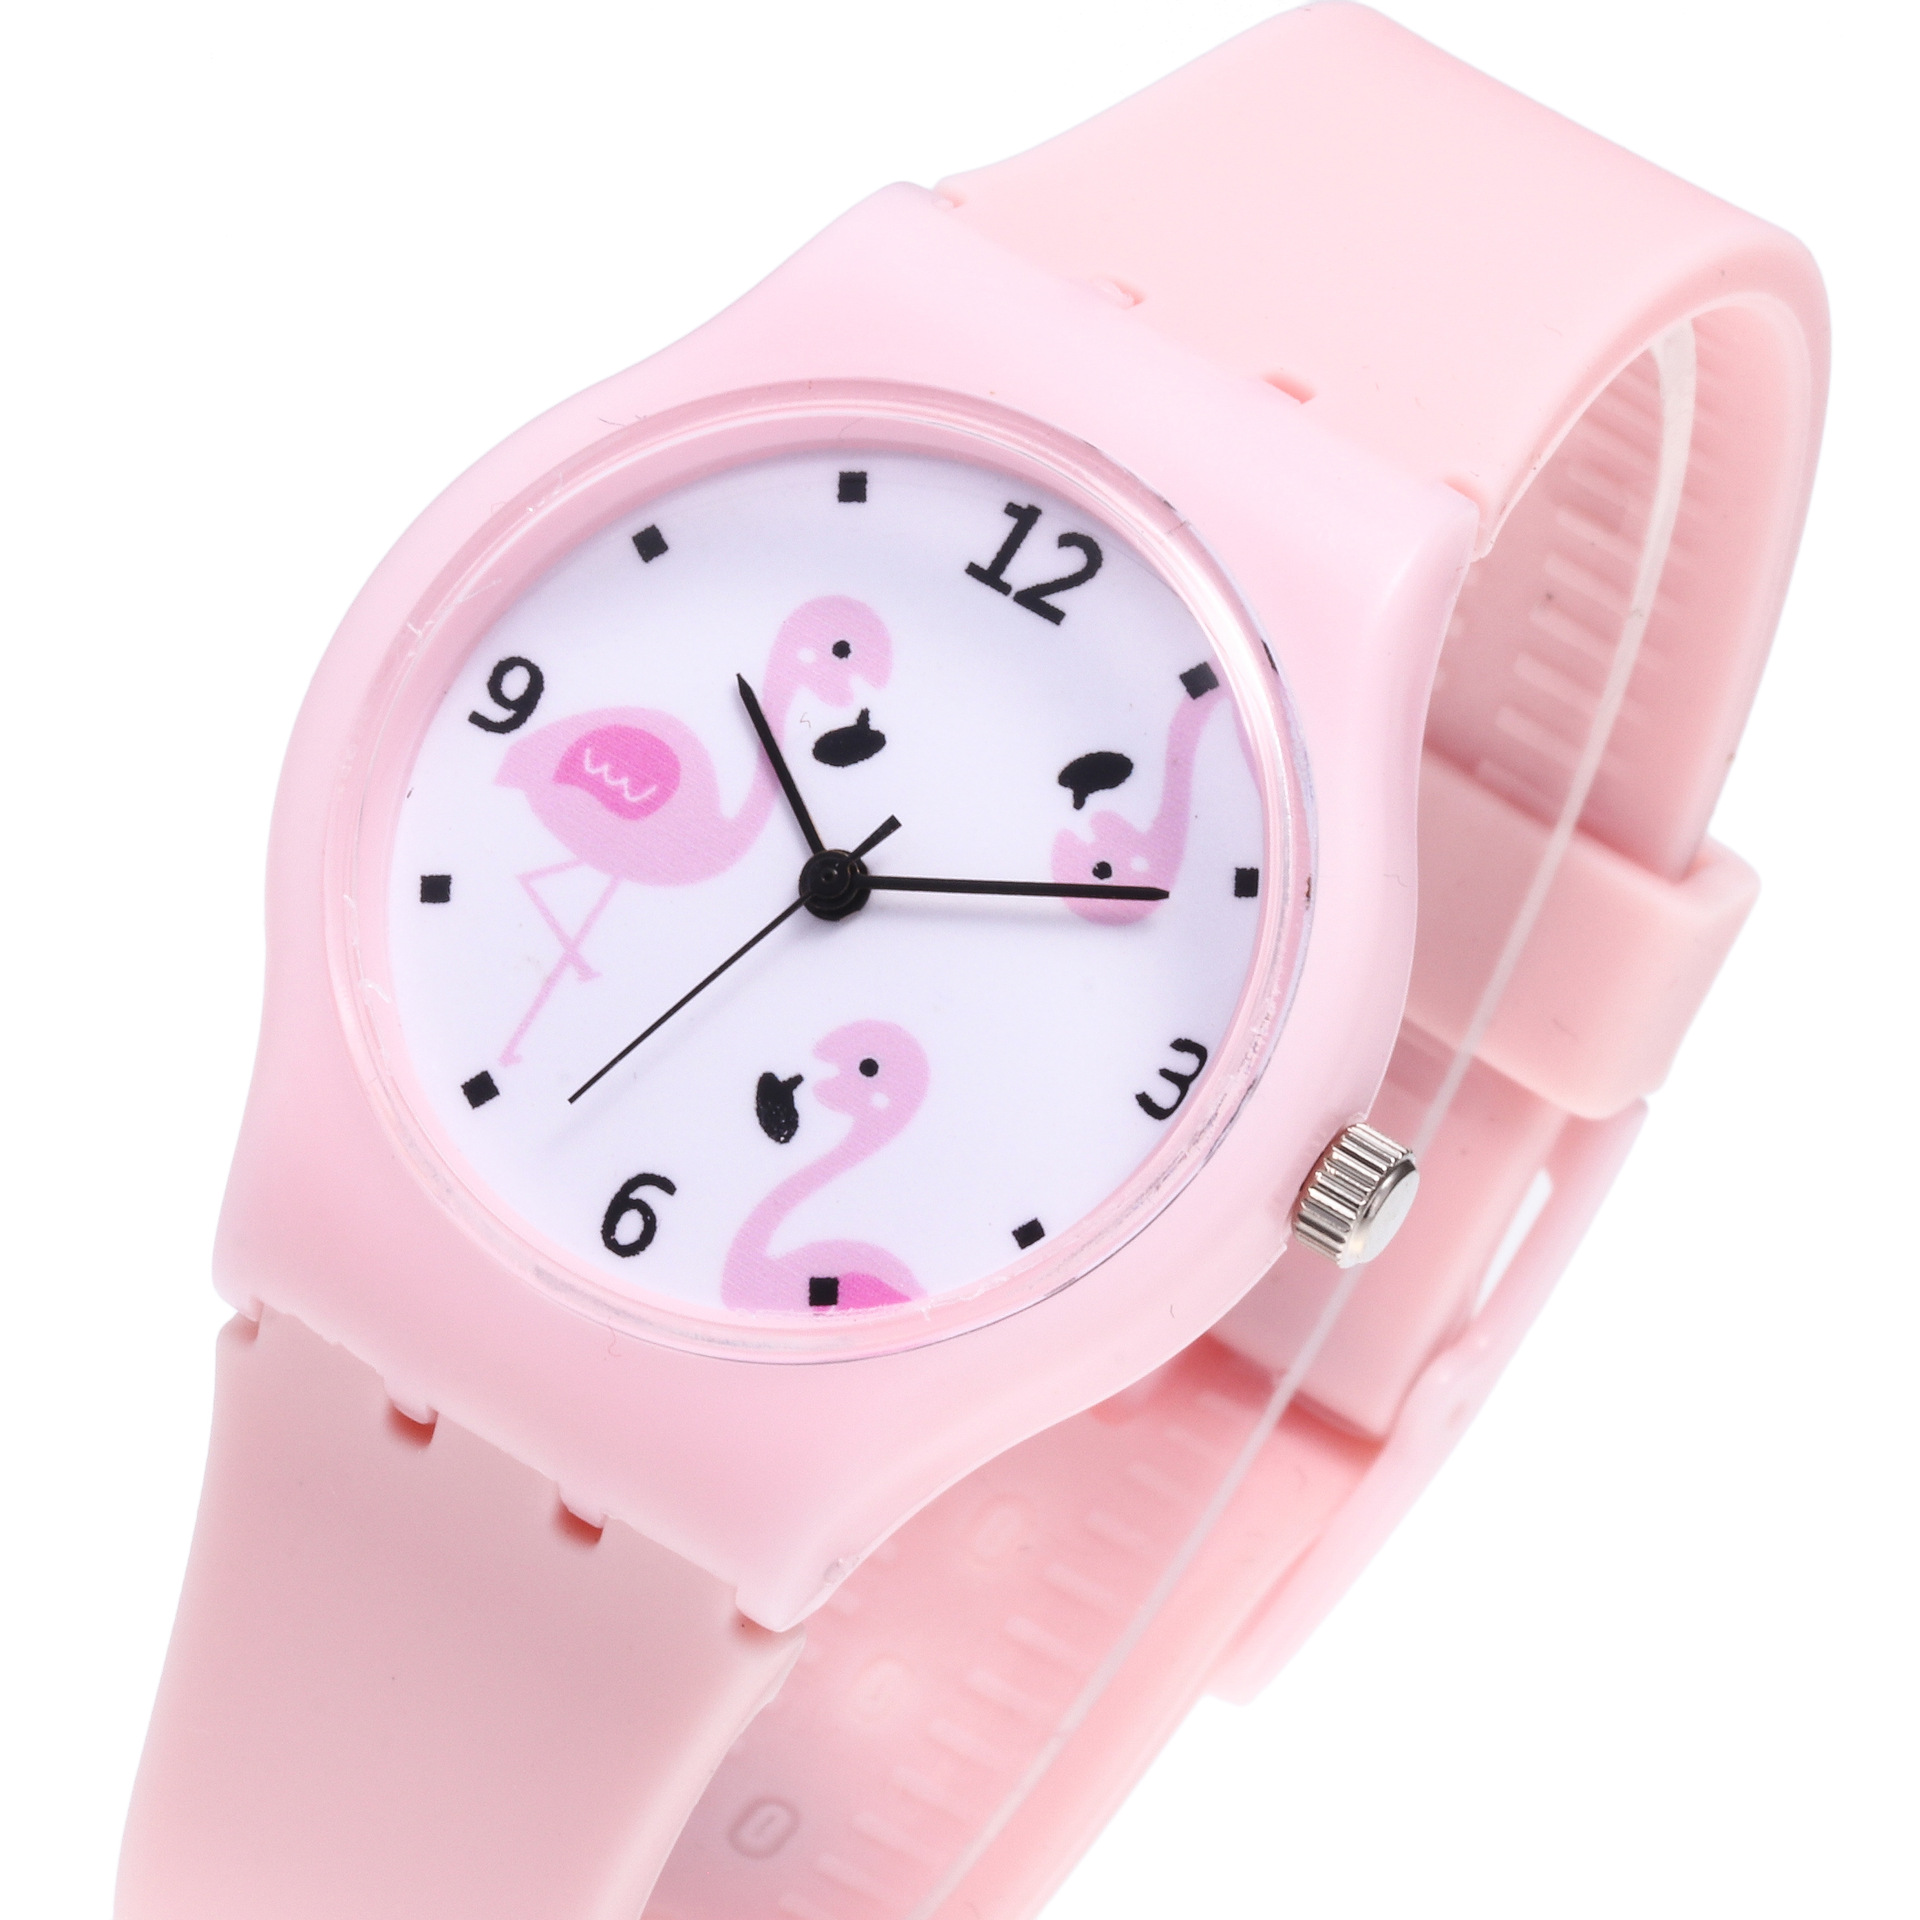 Flamingos Kids Watches Girls And Boys Cartoon Silicone Watch Fashion Children's Quartz Wrist Watches Clock Gifts